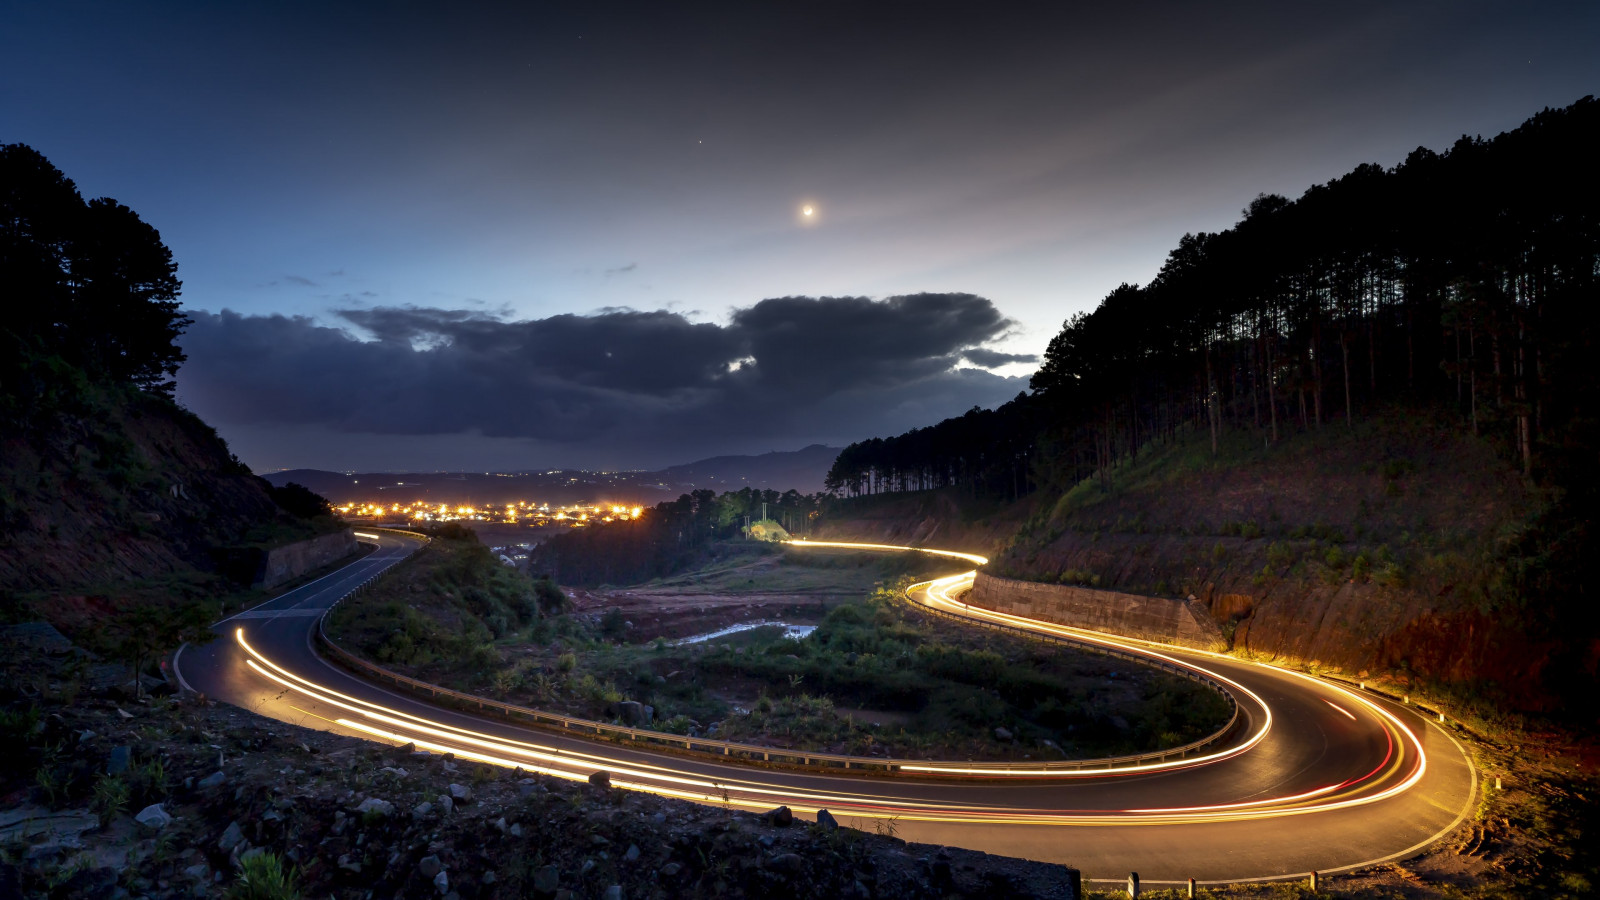 Lights on the road of Dalat, Vietnam wallpaper 1600x900